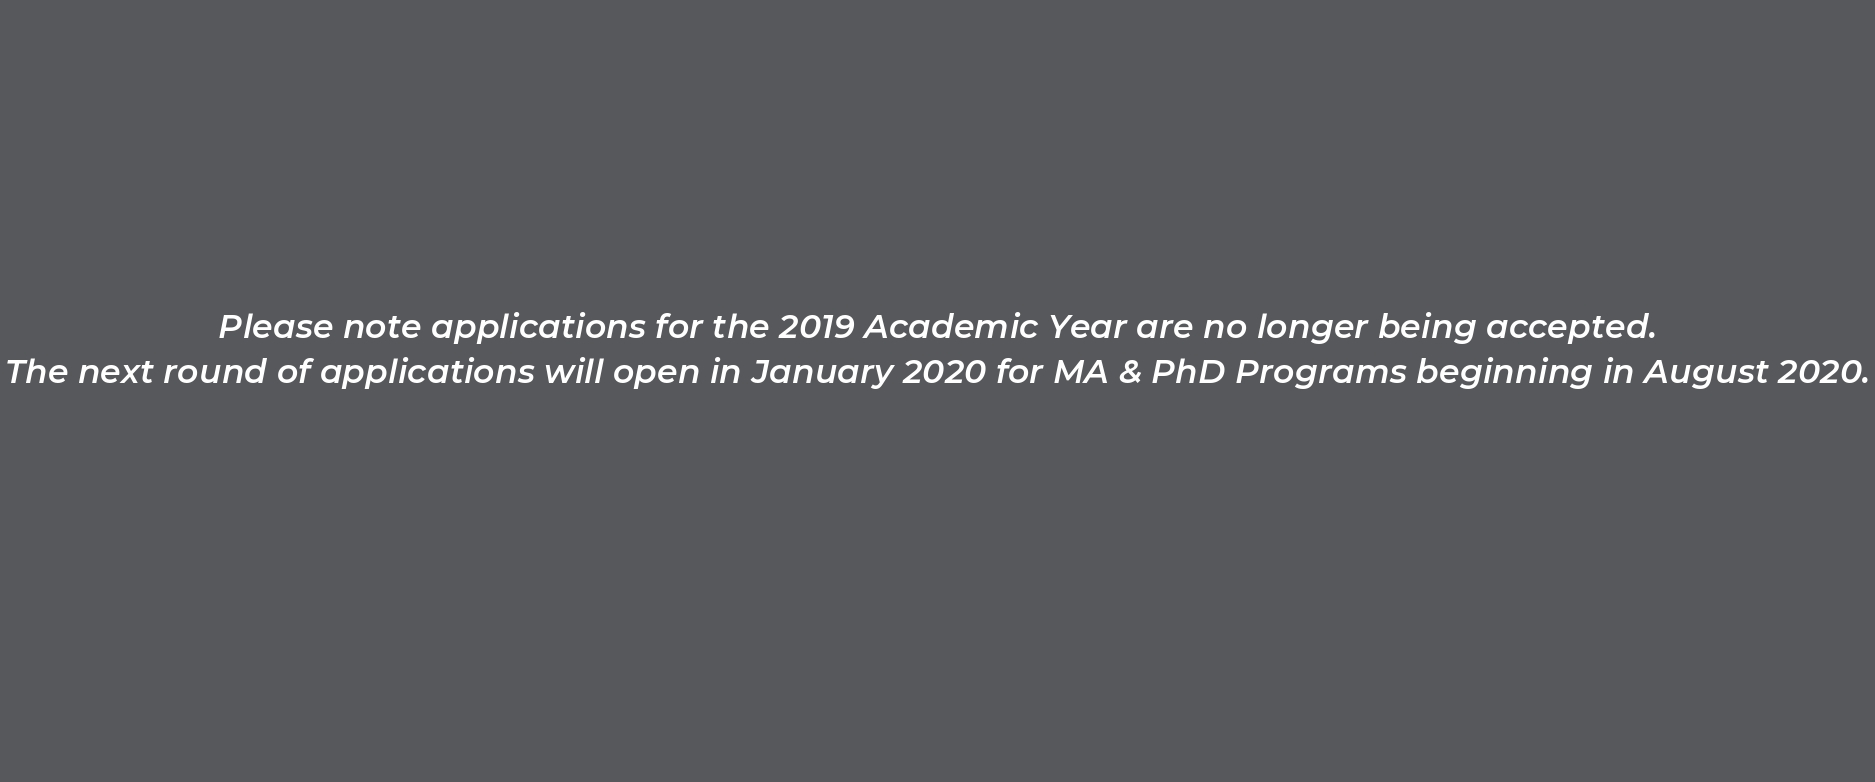 Copy of 2019 Applications Open - Apply Now (4)_page-0001.jpg